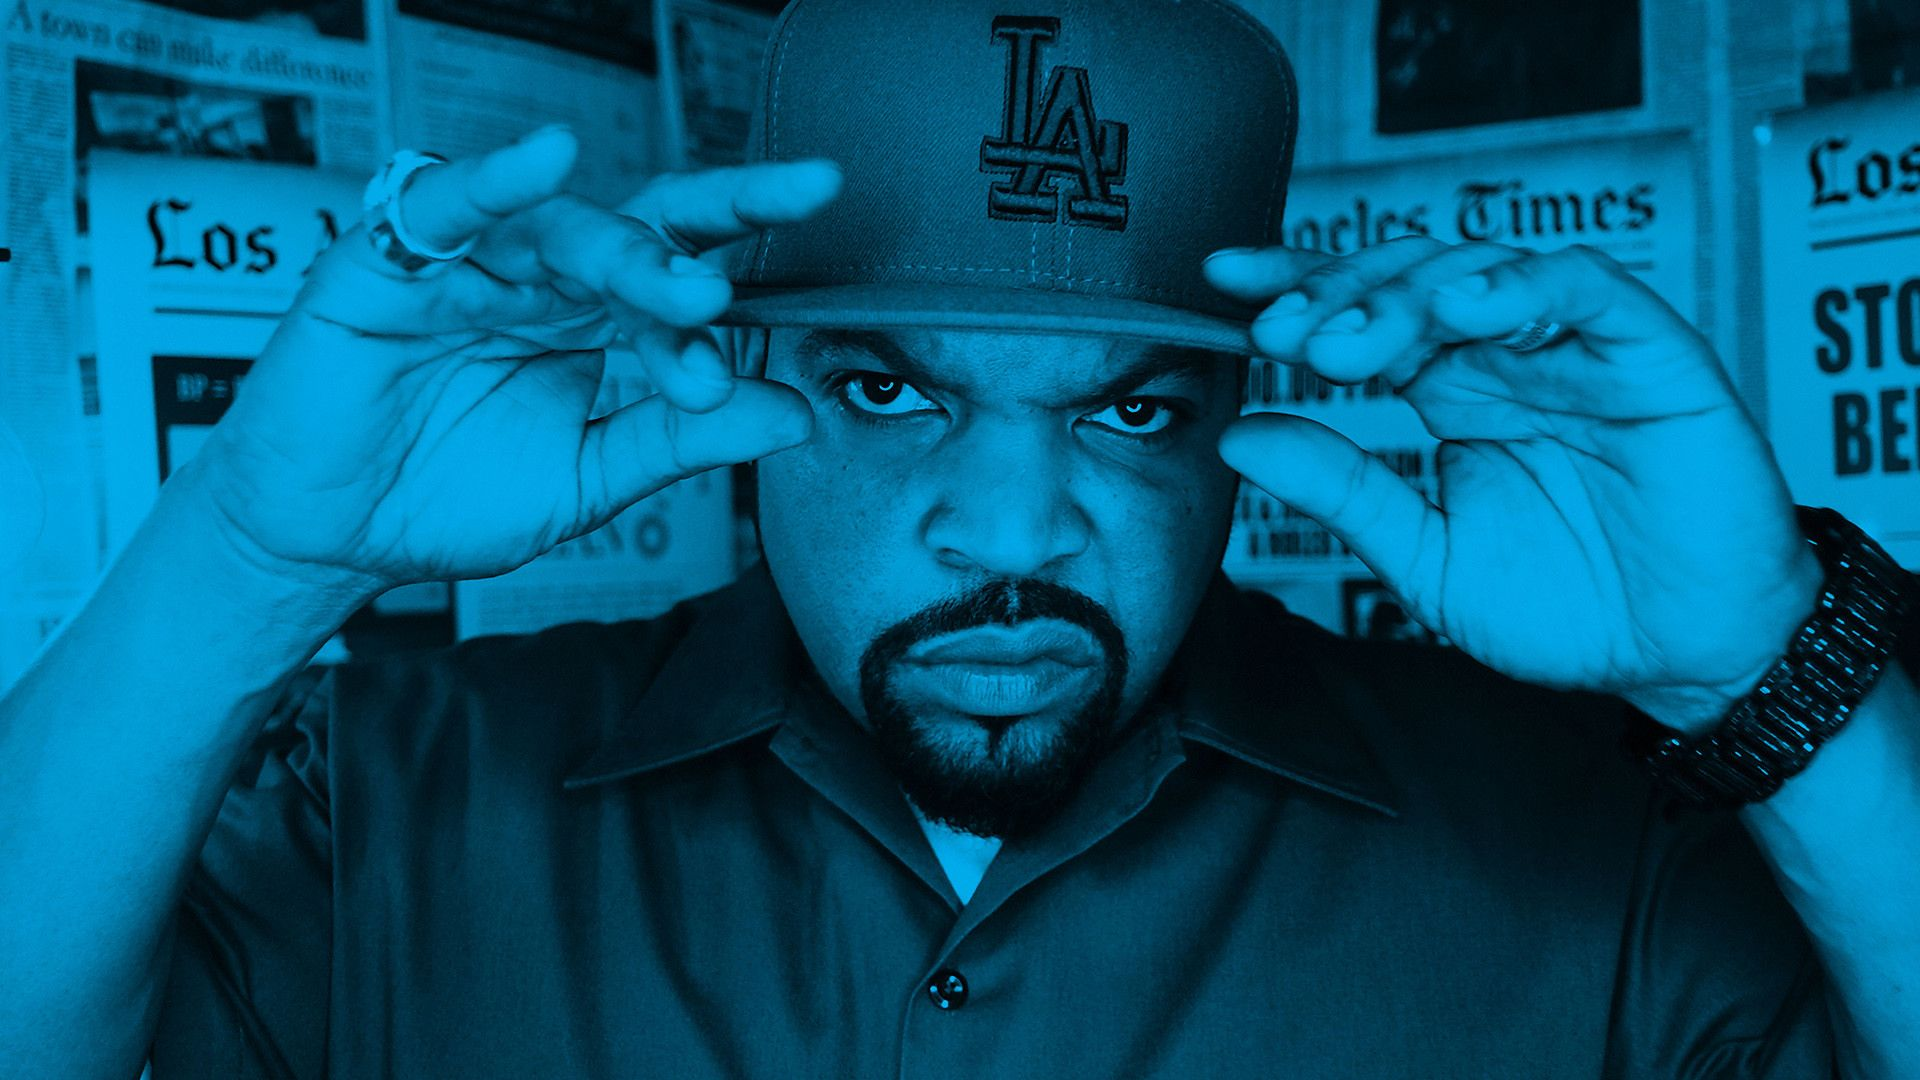 1920x1080 70+ Ice Cube Wallpapers on WallpaperPlay